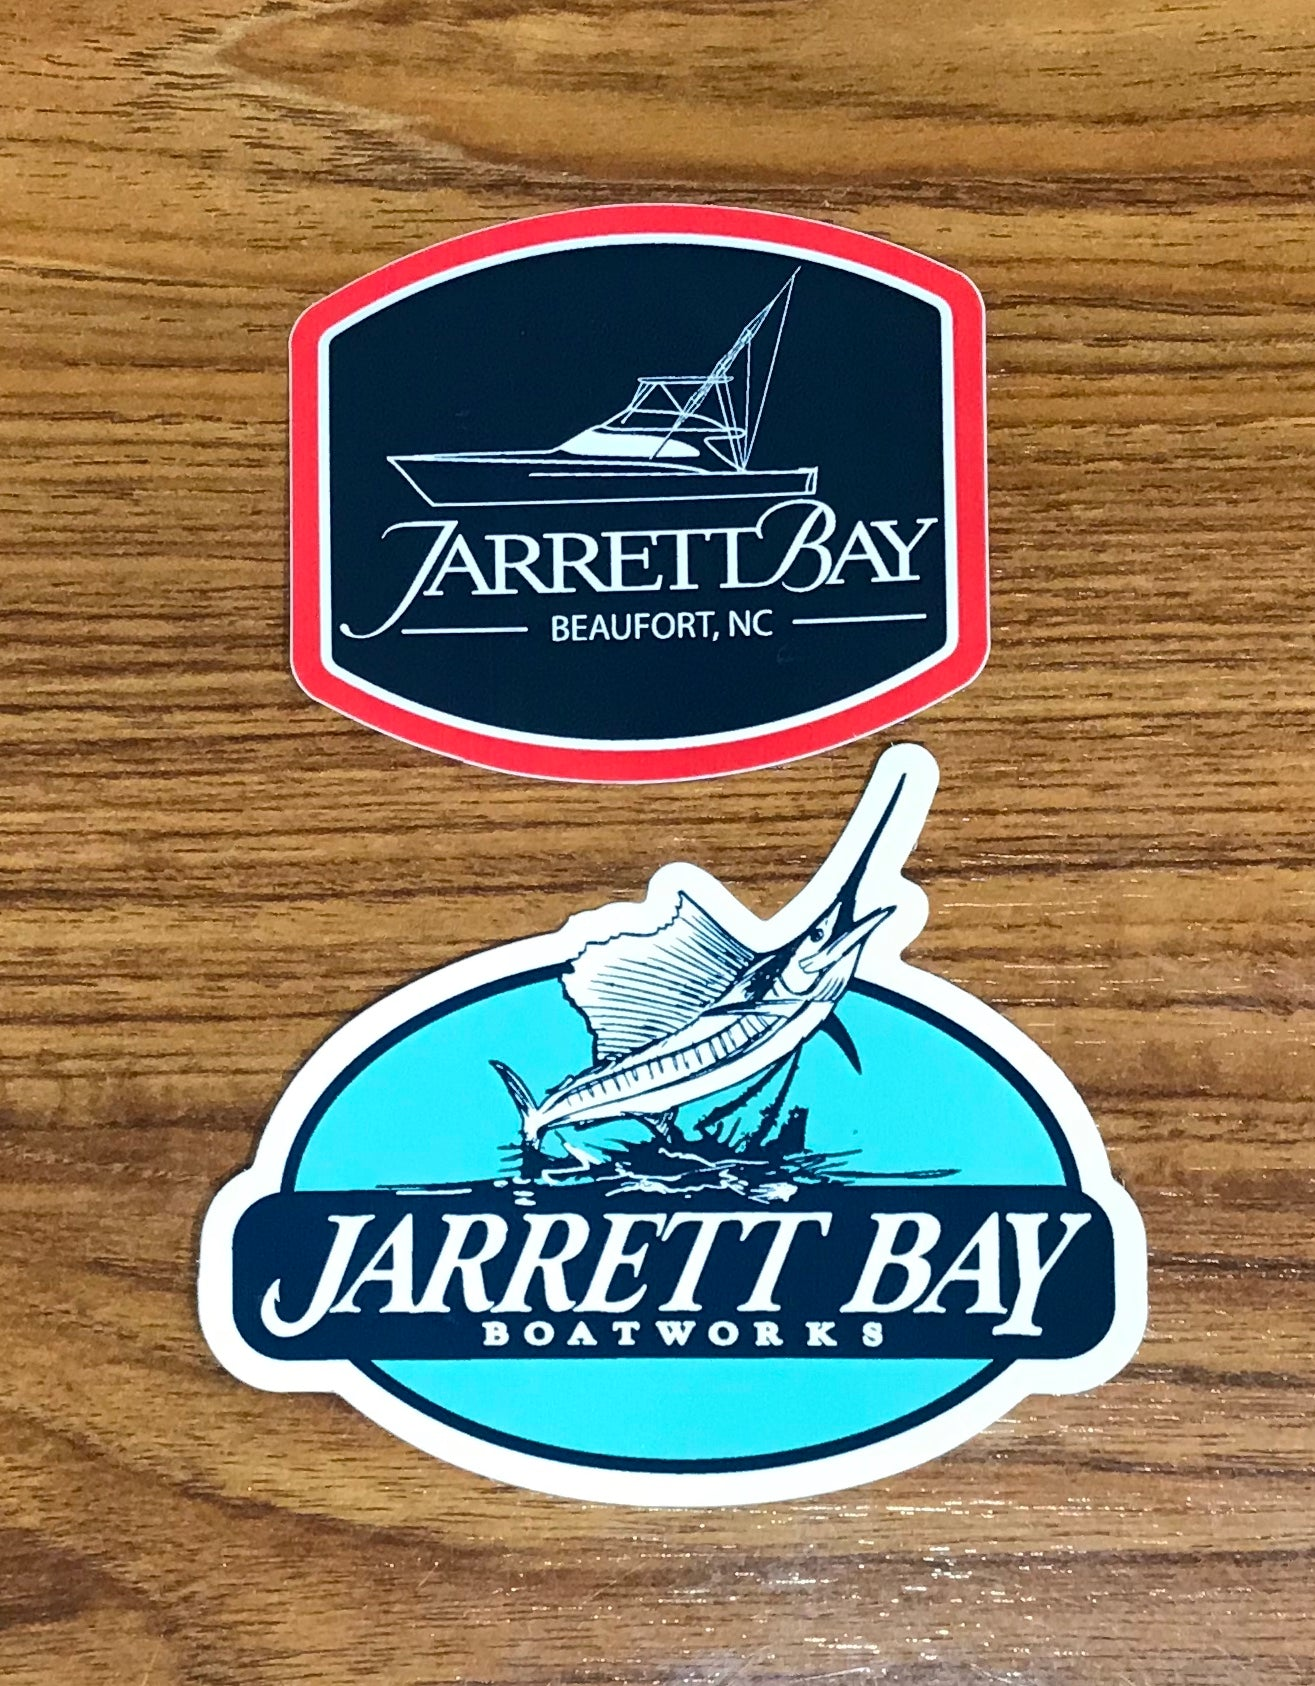 Jarrett Bay Dye Cut Decals